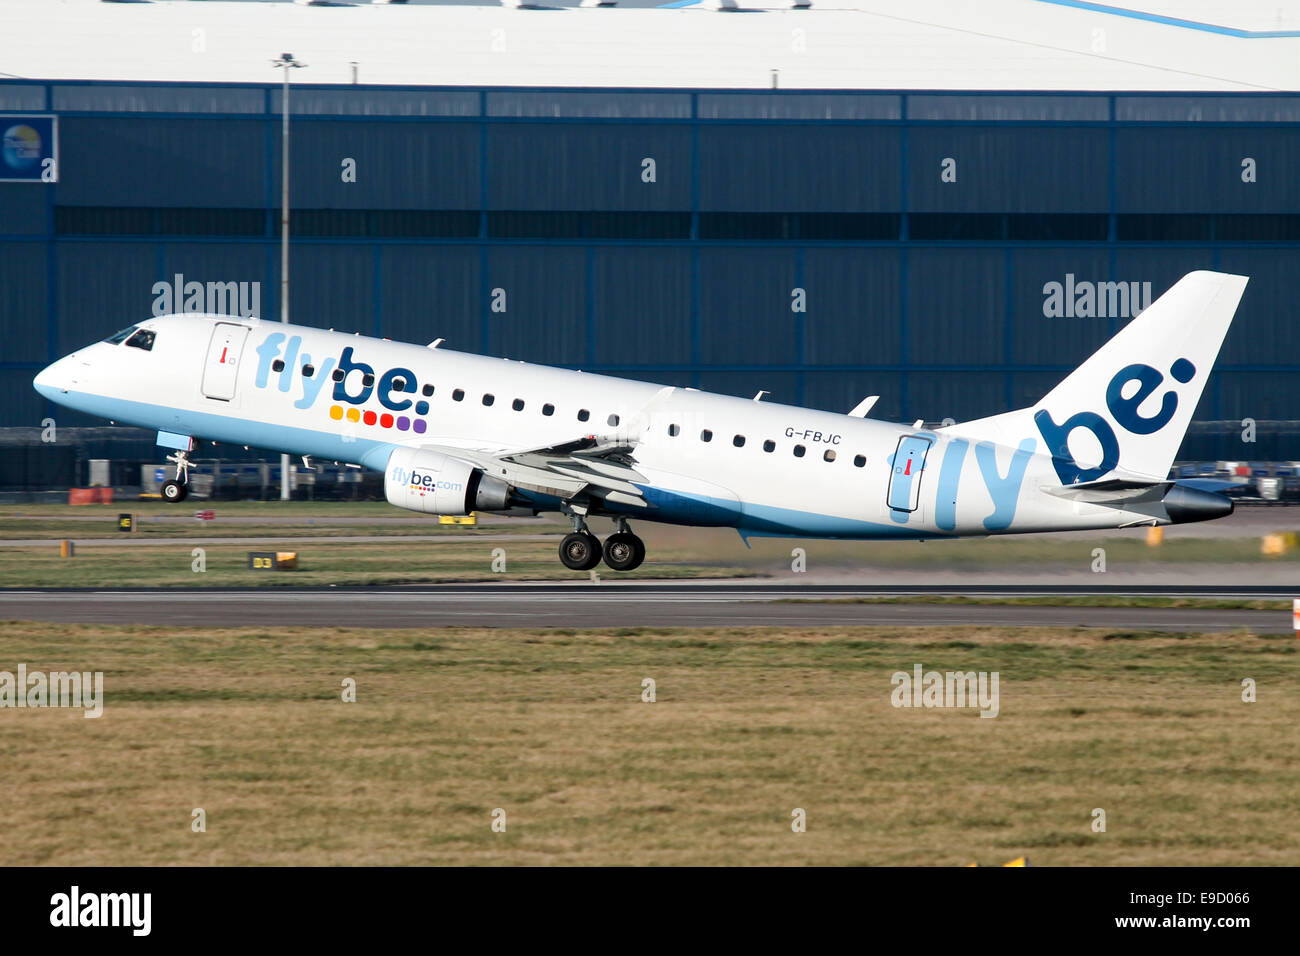 FlyBe Emraber 175 rotates from runway 23R at Manchester airport. - Stock Image